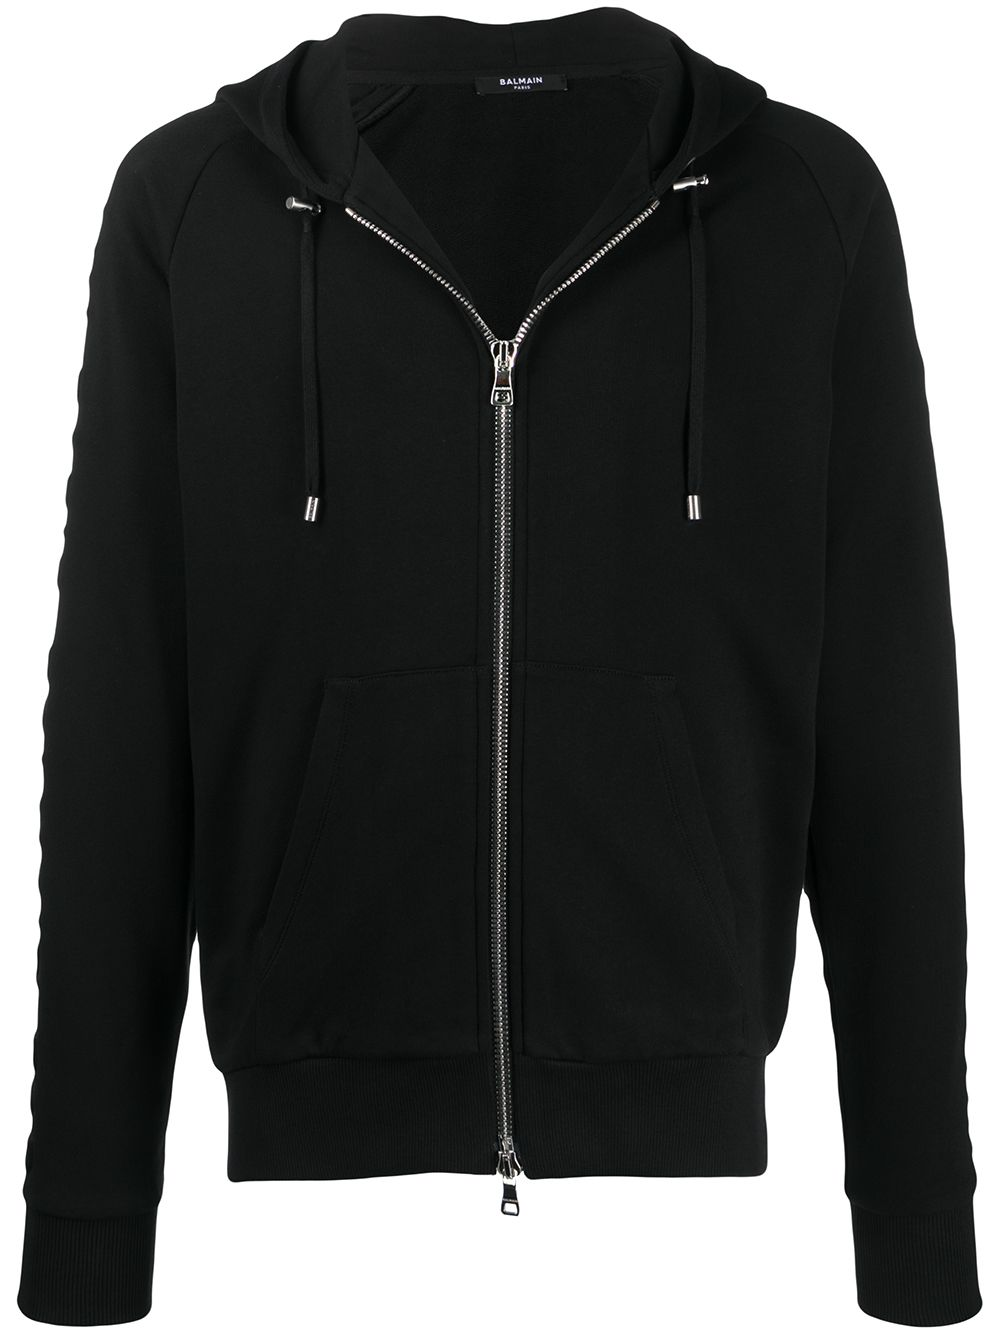 Balmain Embossed logo-panel Zipped Hoodie Black - Maison De Fashion